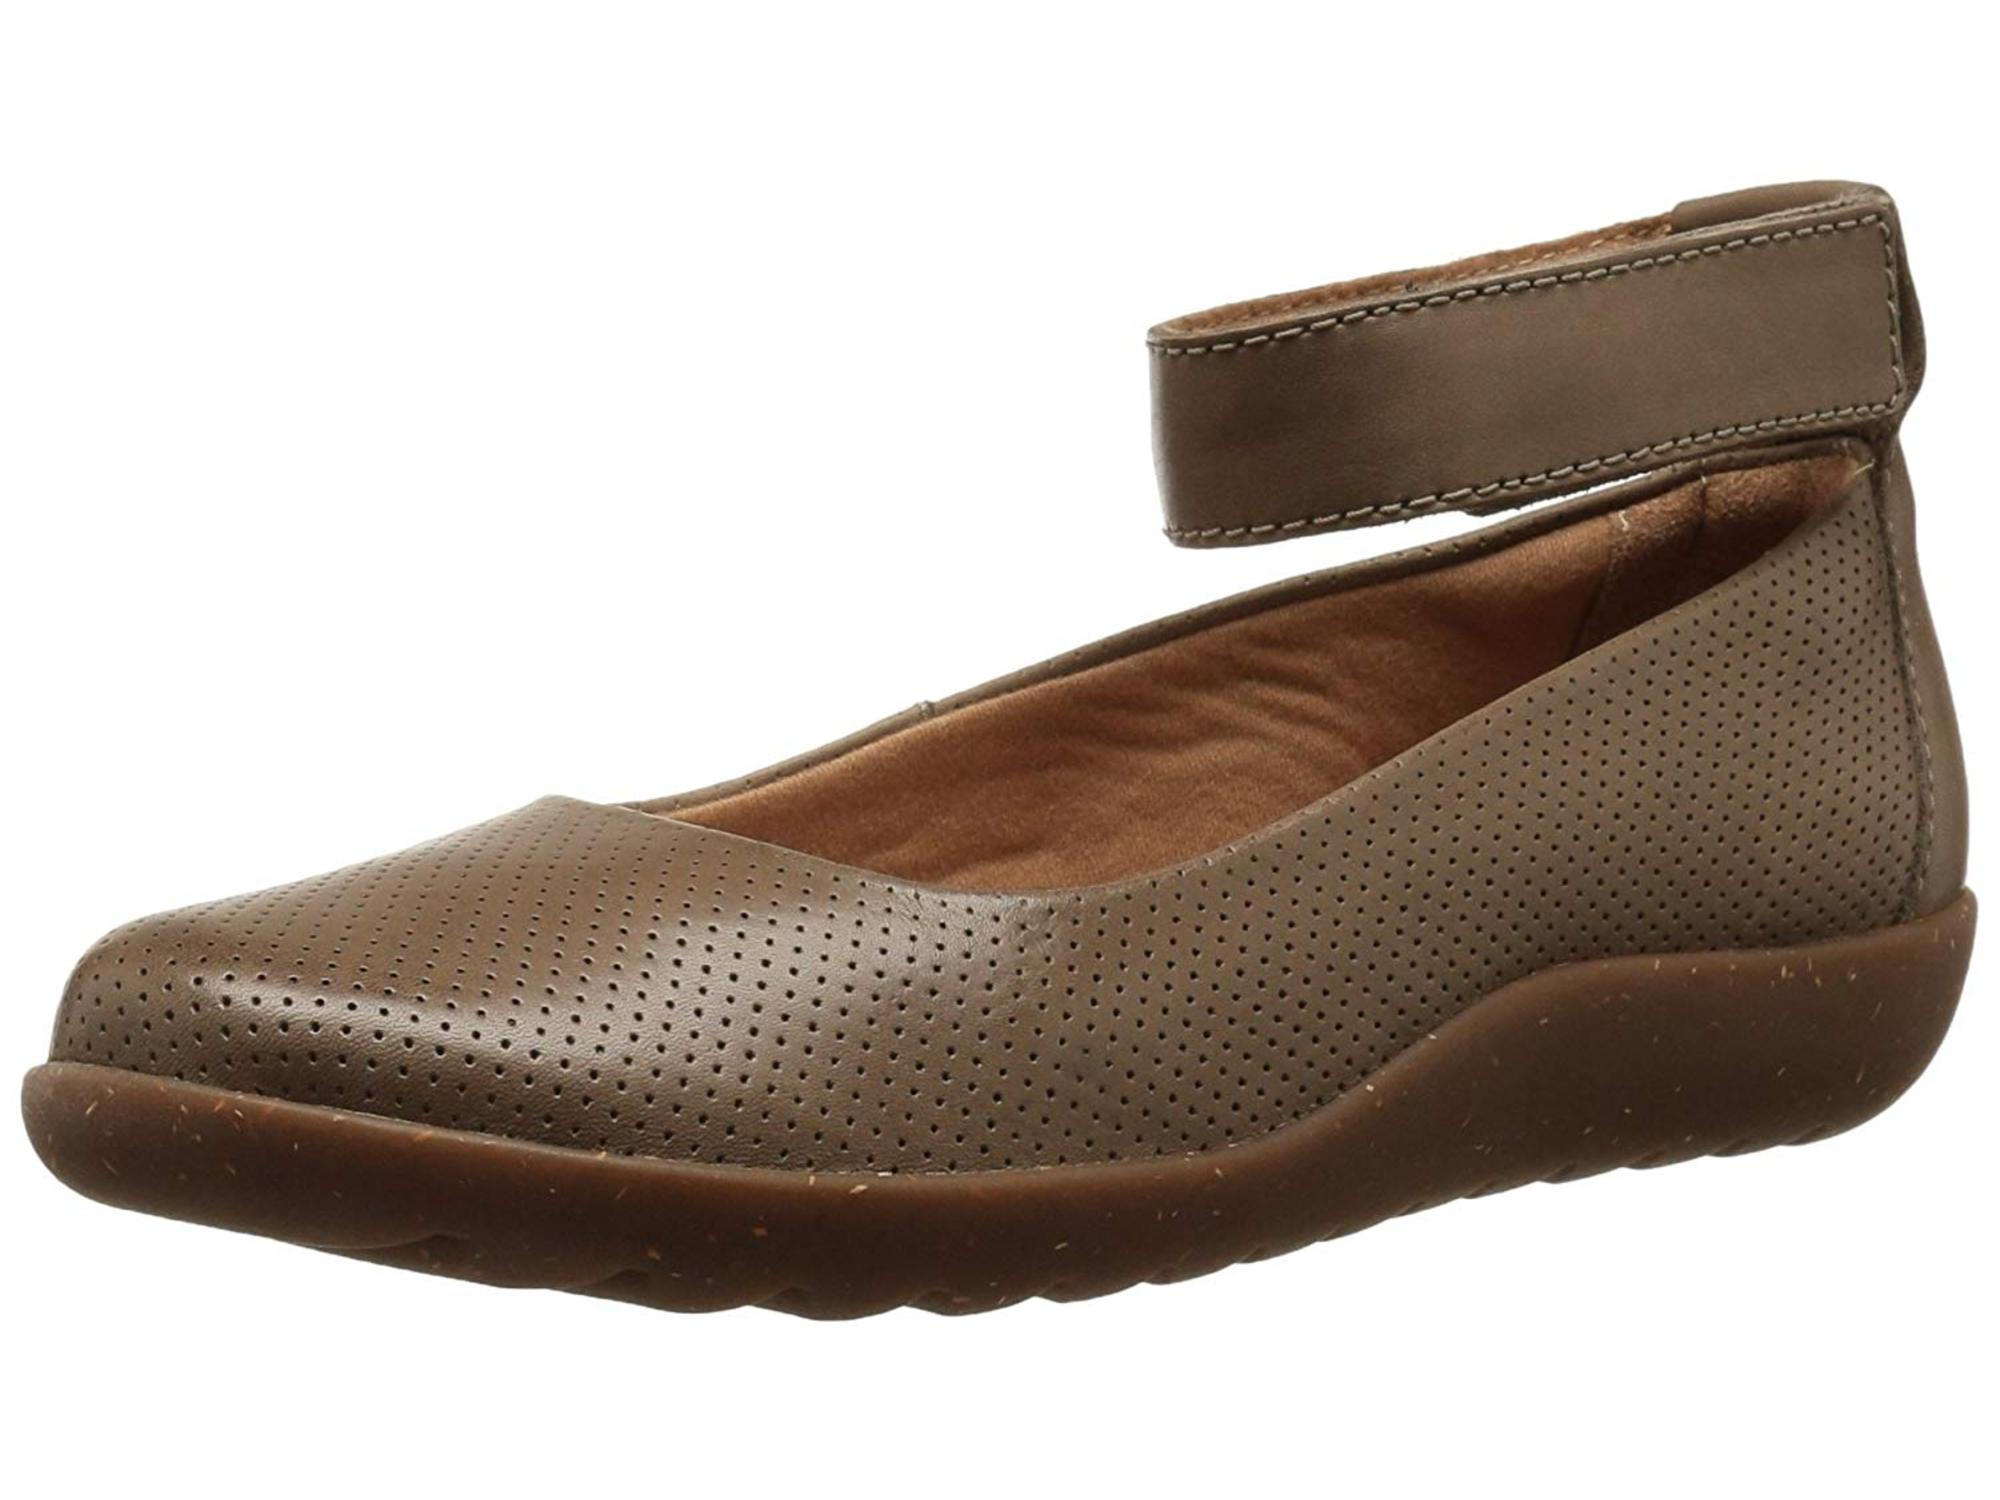 10da110aac65 Clarks Womens Medora Nina Closed Toe Ankle Strap Slide